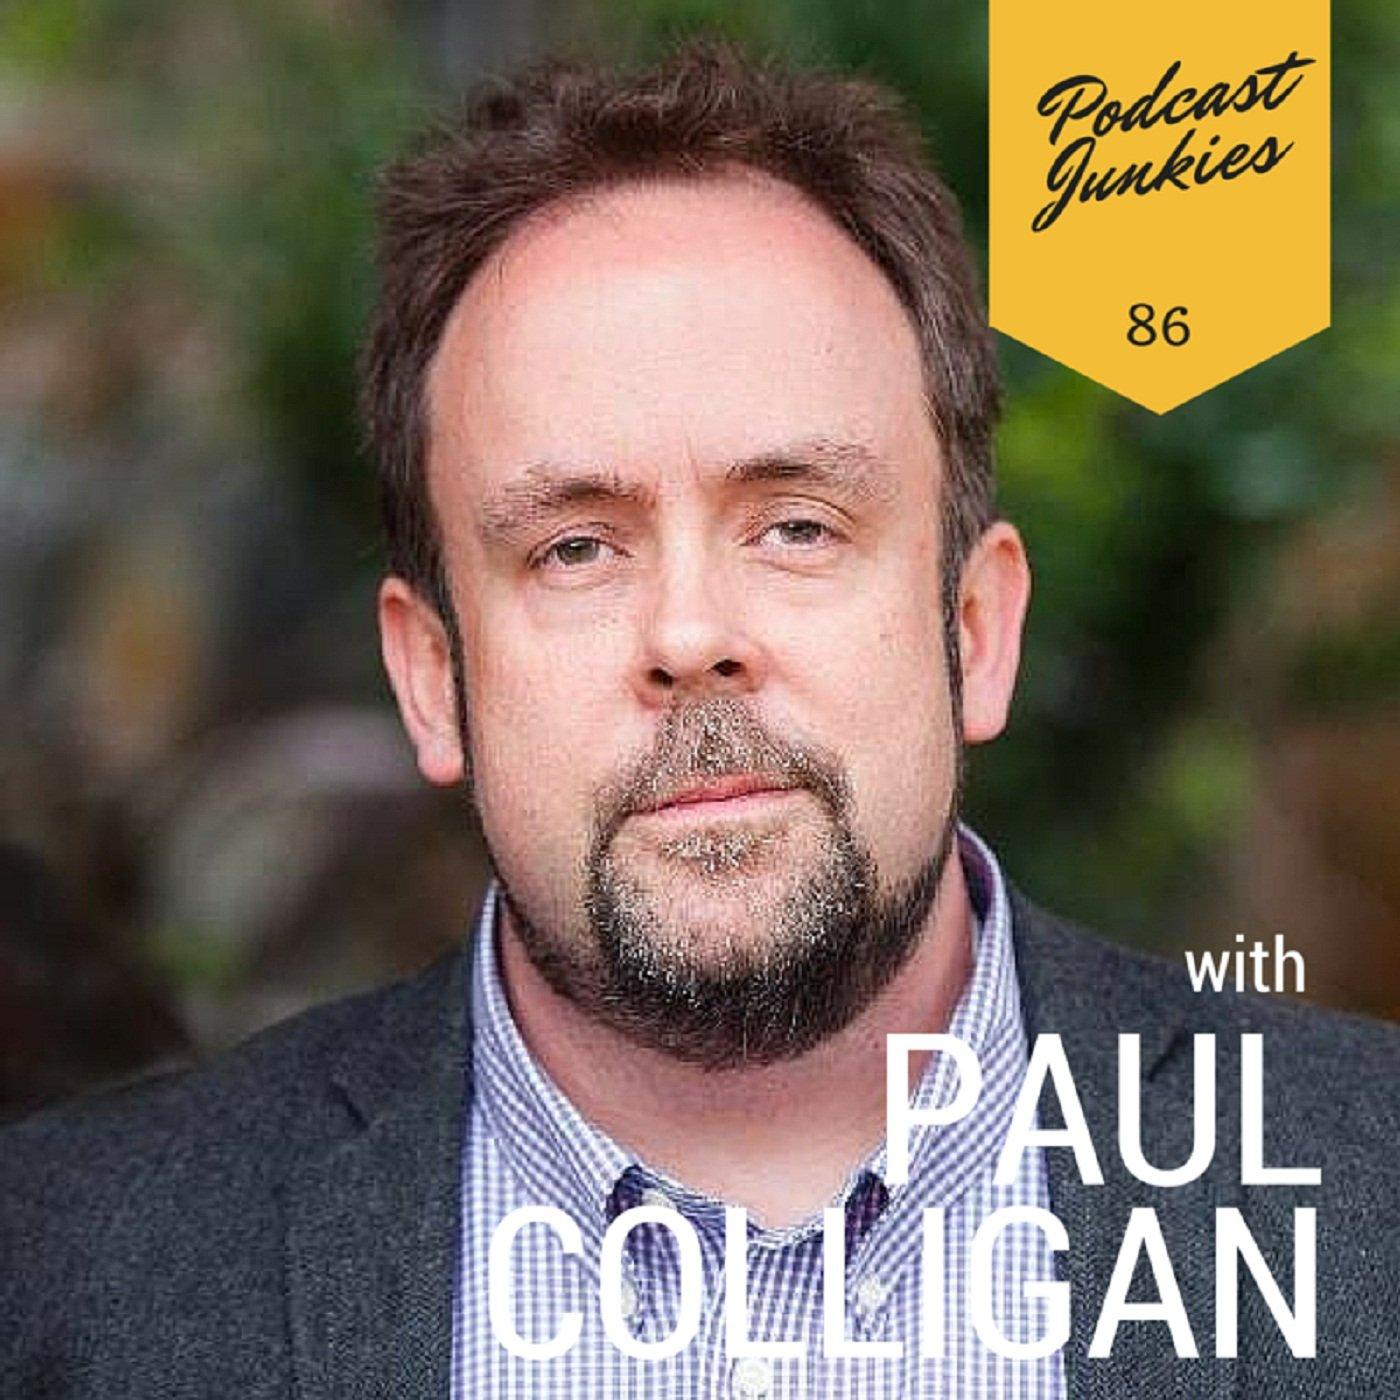 086 Paul Colligan | Providing Your Children with the Proper Tools to Handle Technology